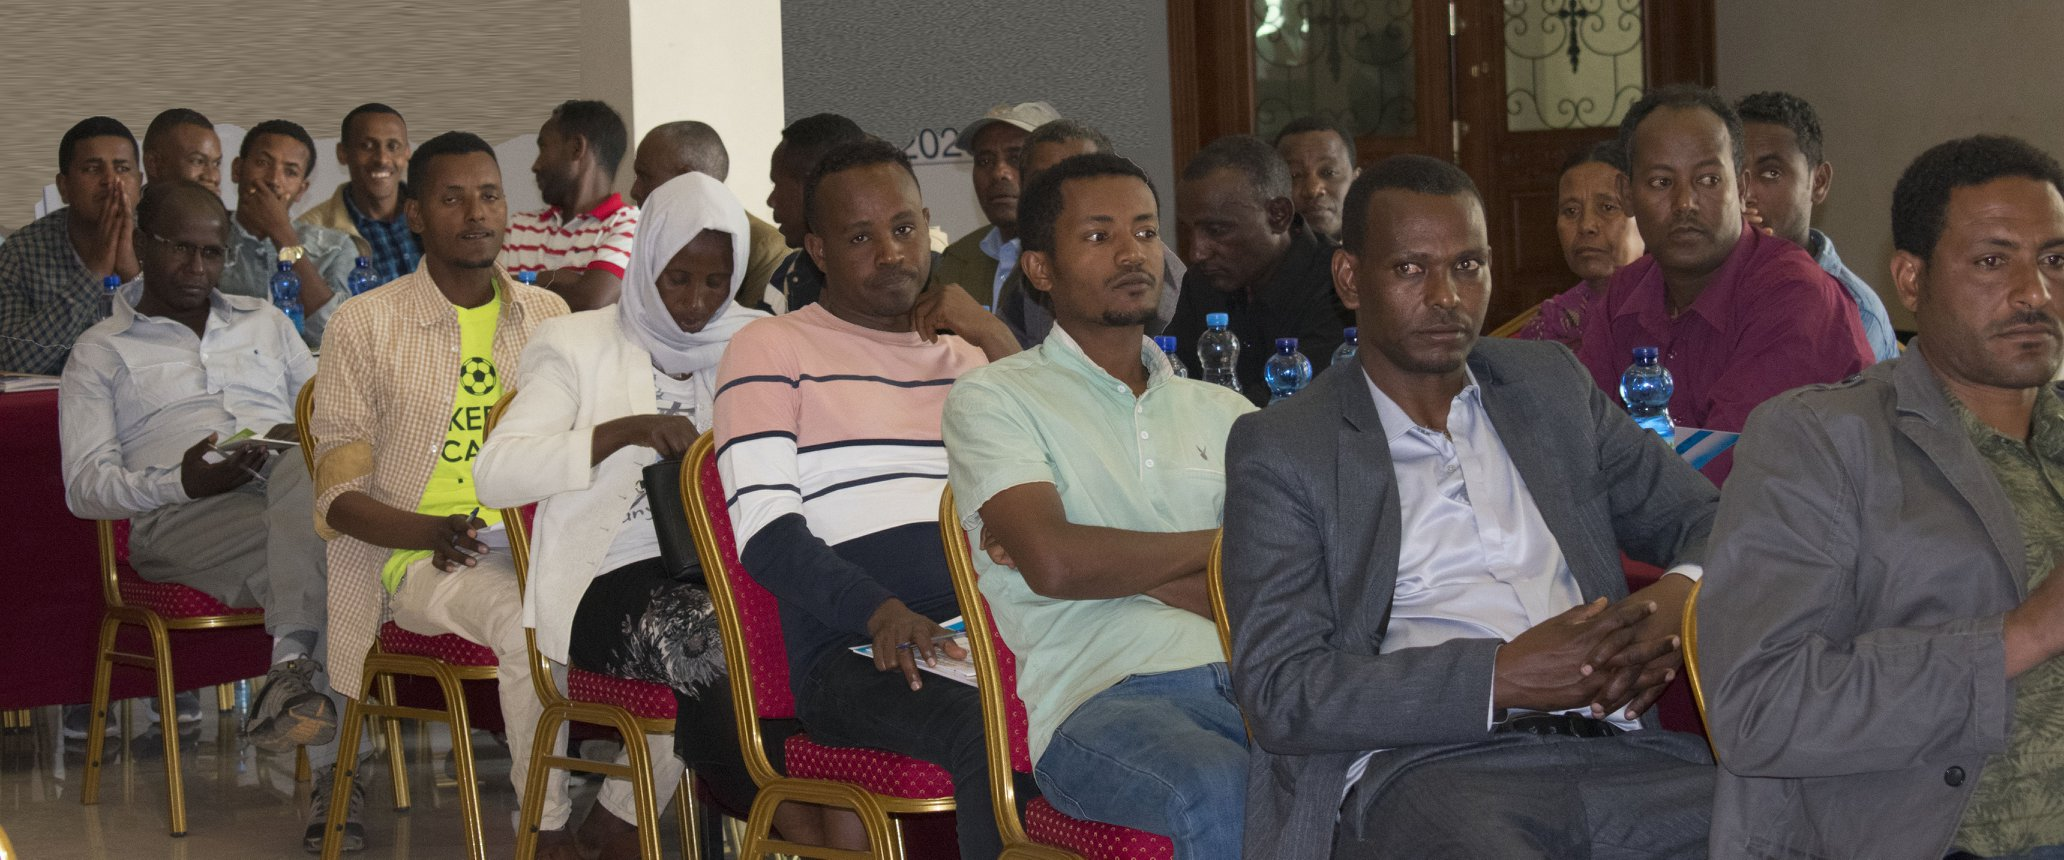 Human Rights Training for Prosecutors and Prison Officials in Ethiopia